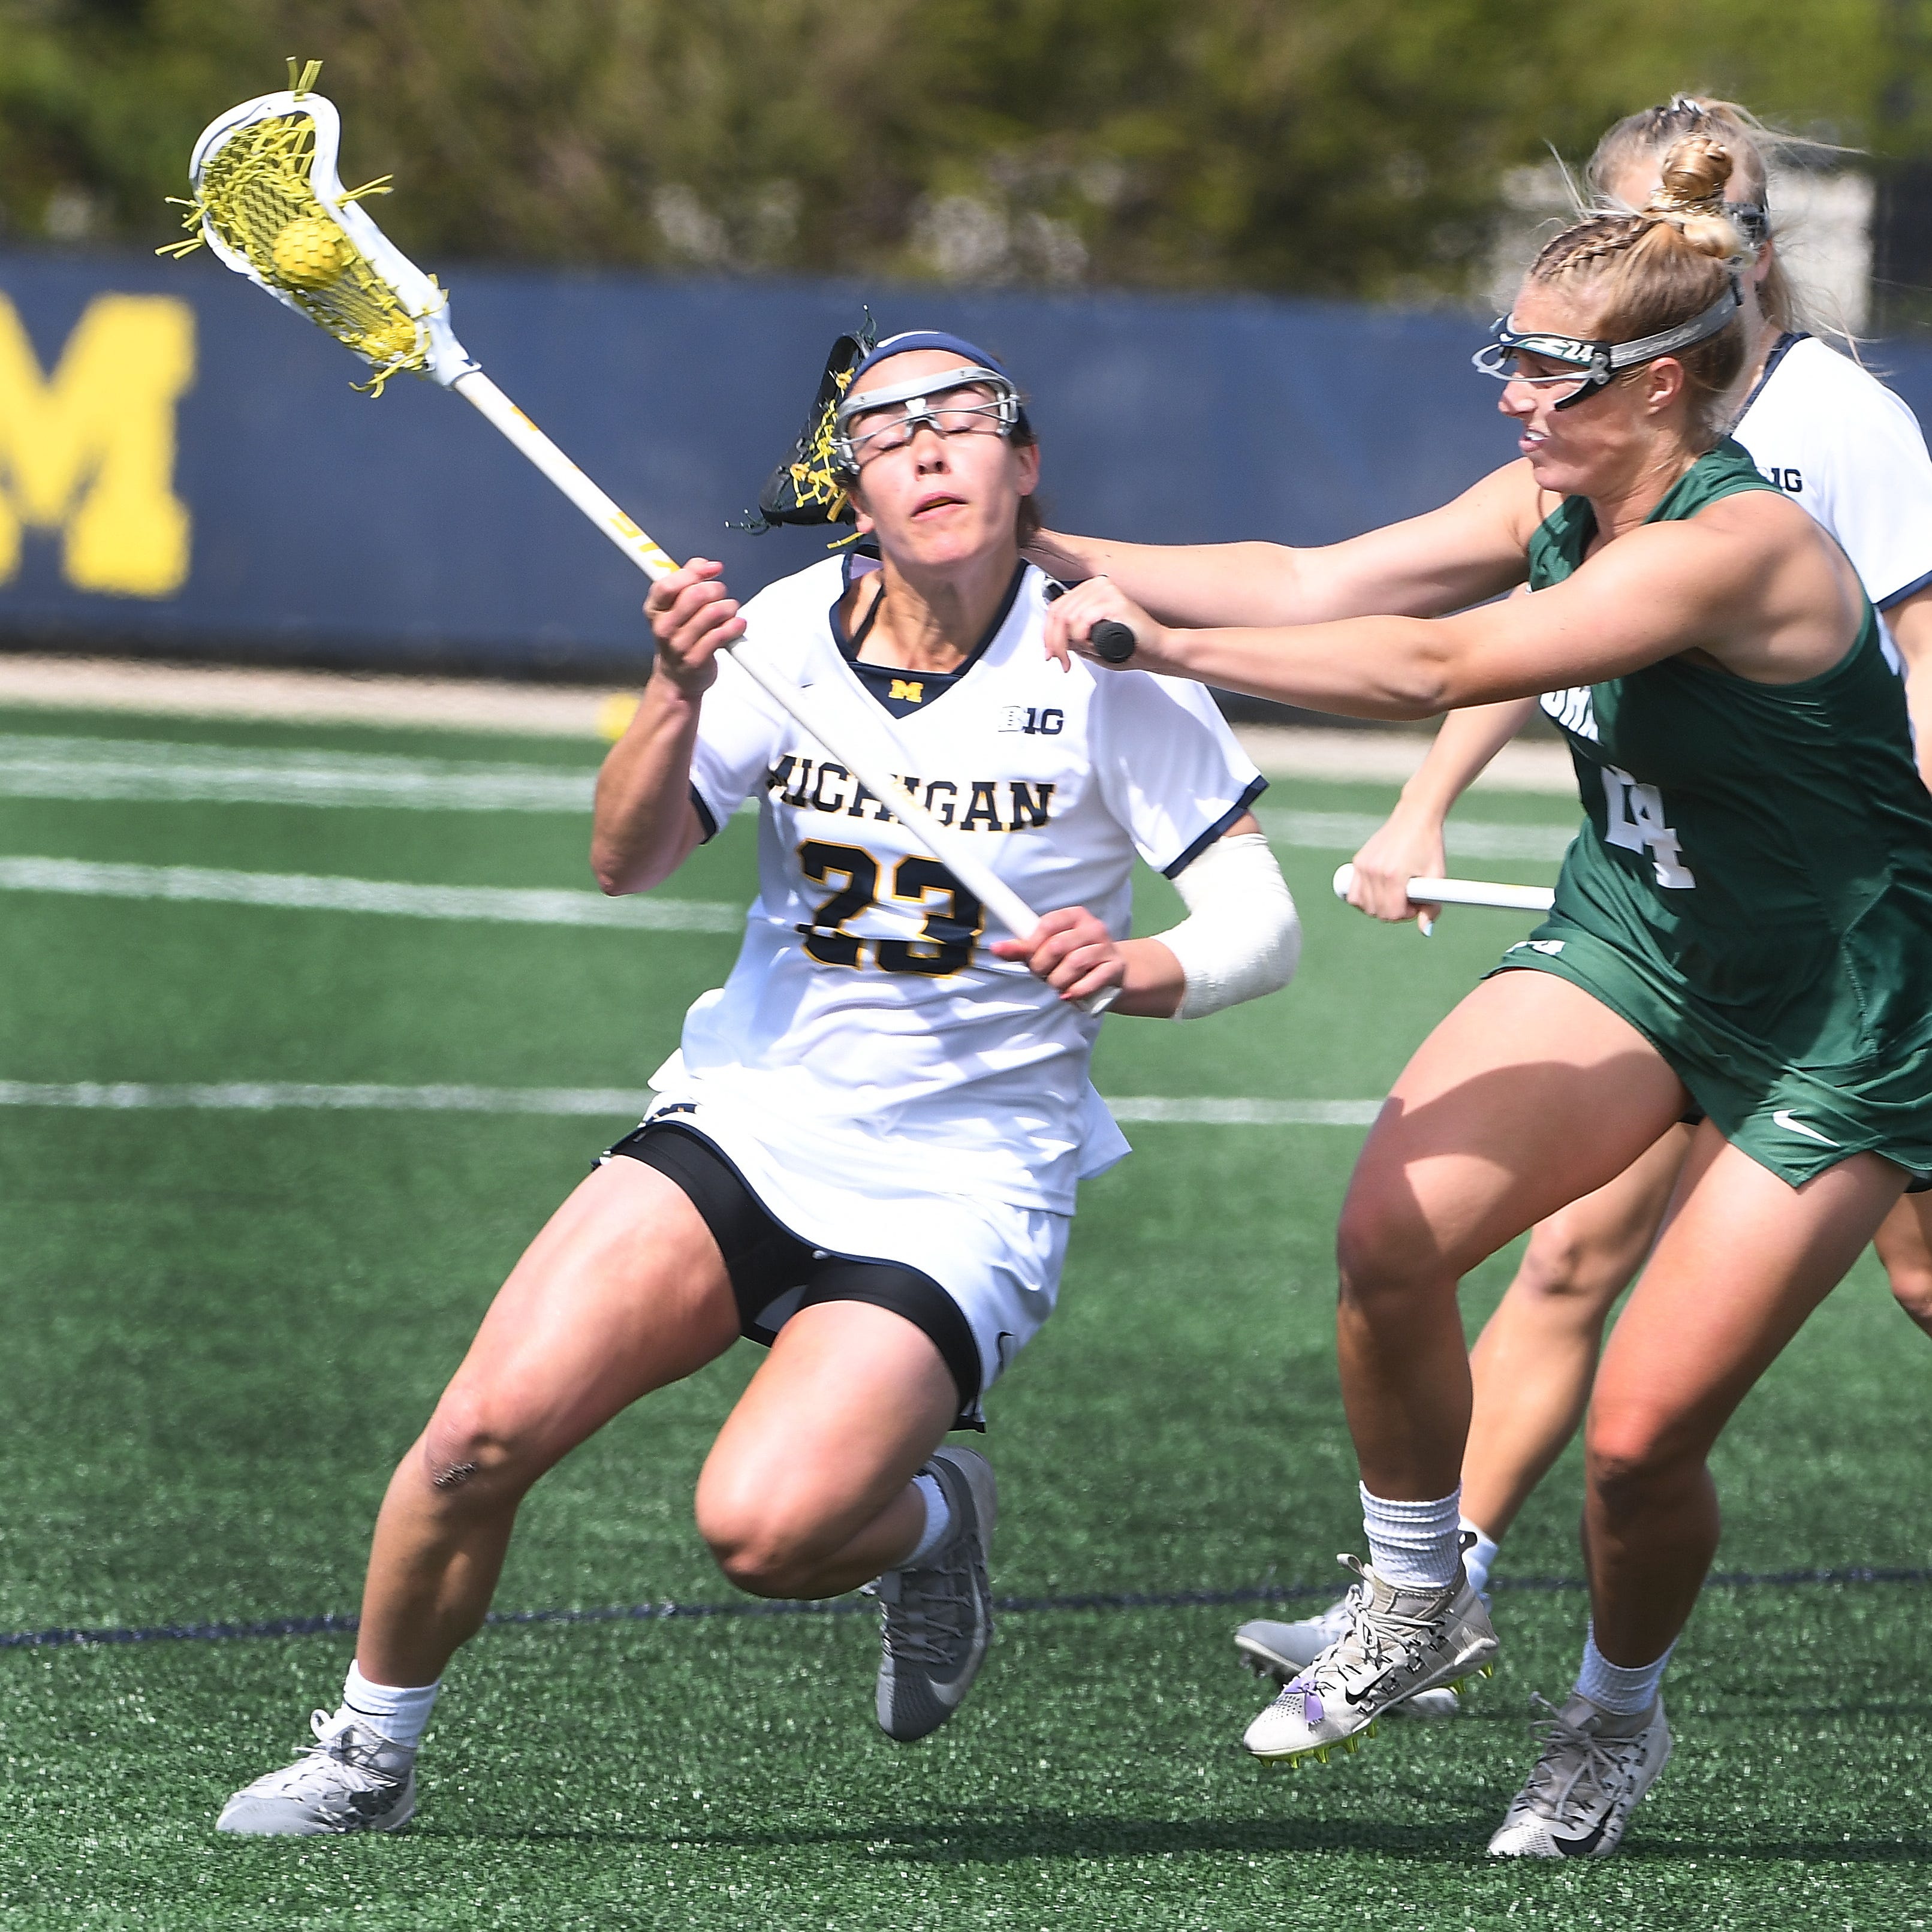 Michigan women's lacrosse bows out in NCAA tournament, but program is on the rise